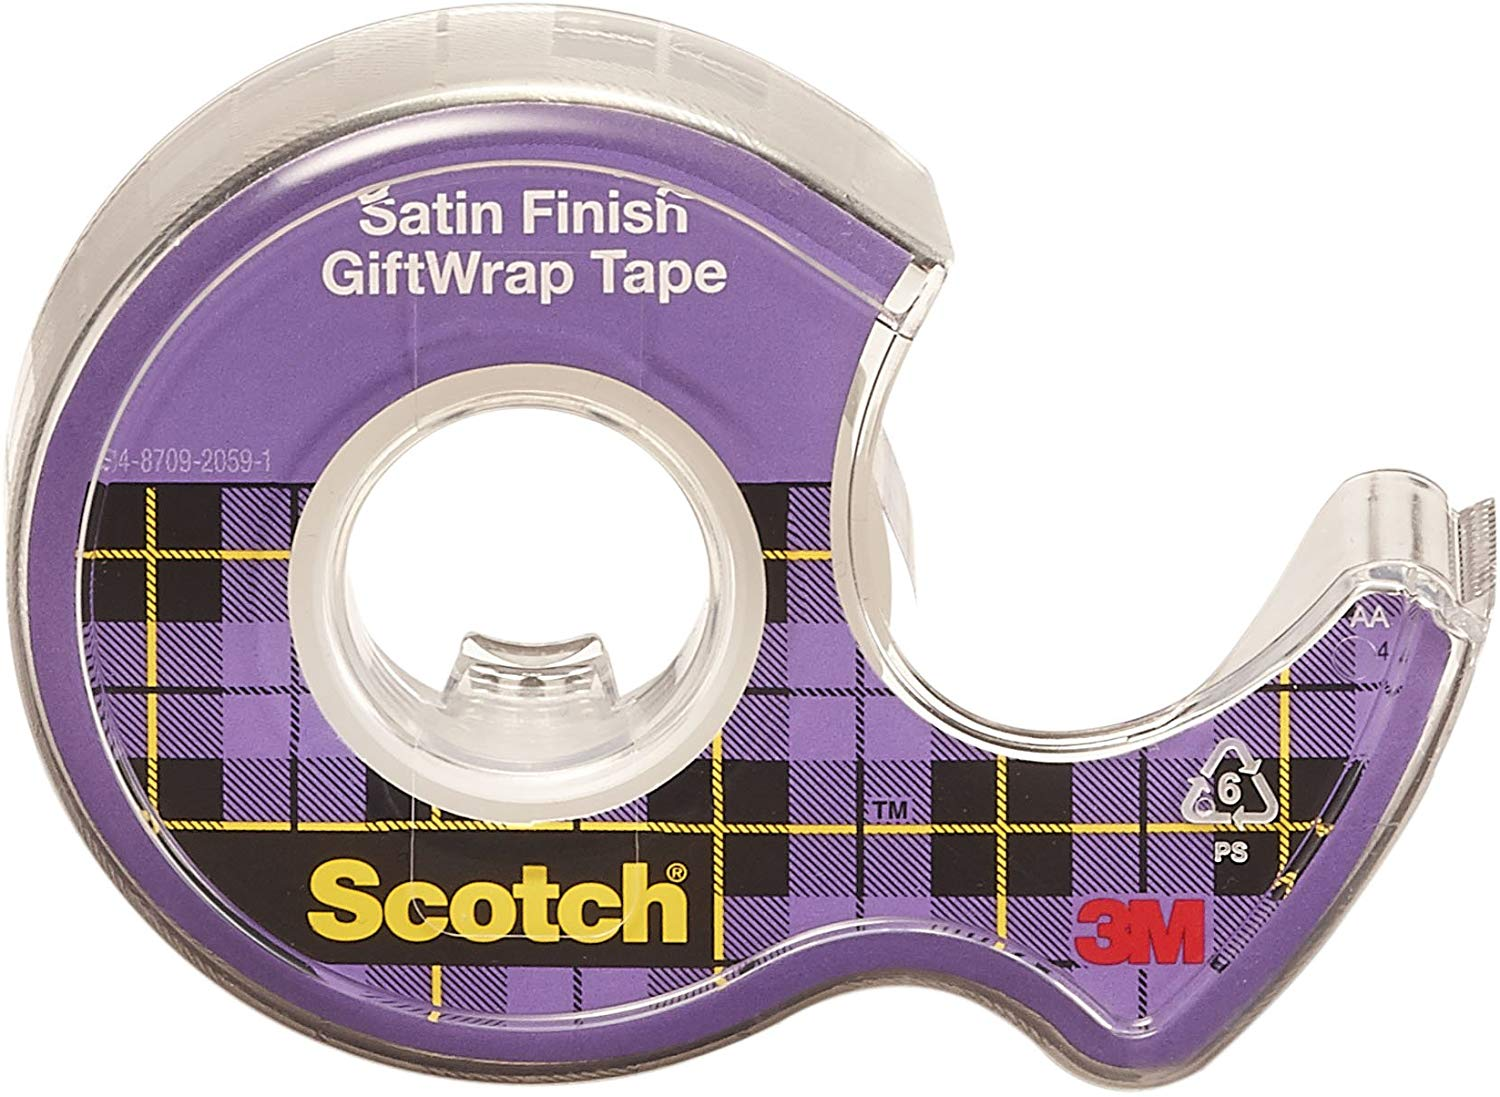 Scotch GiftWrap Tape, Dispensered Roll 19mm x 16.5m for £1.39